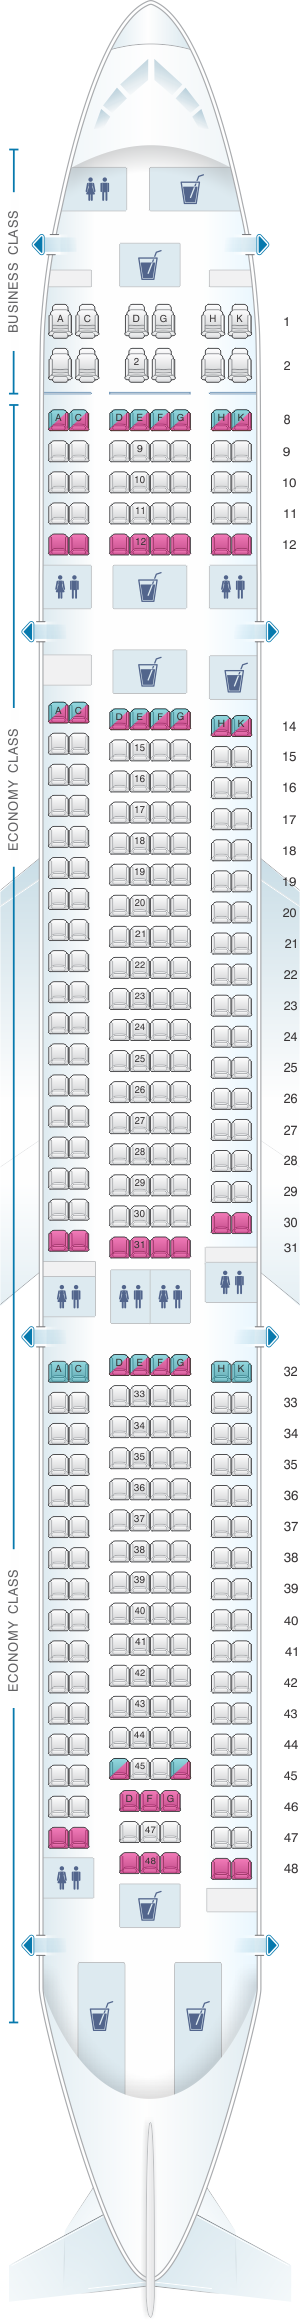 Seat map for Hi Fly Airbus A330 300 325pax